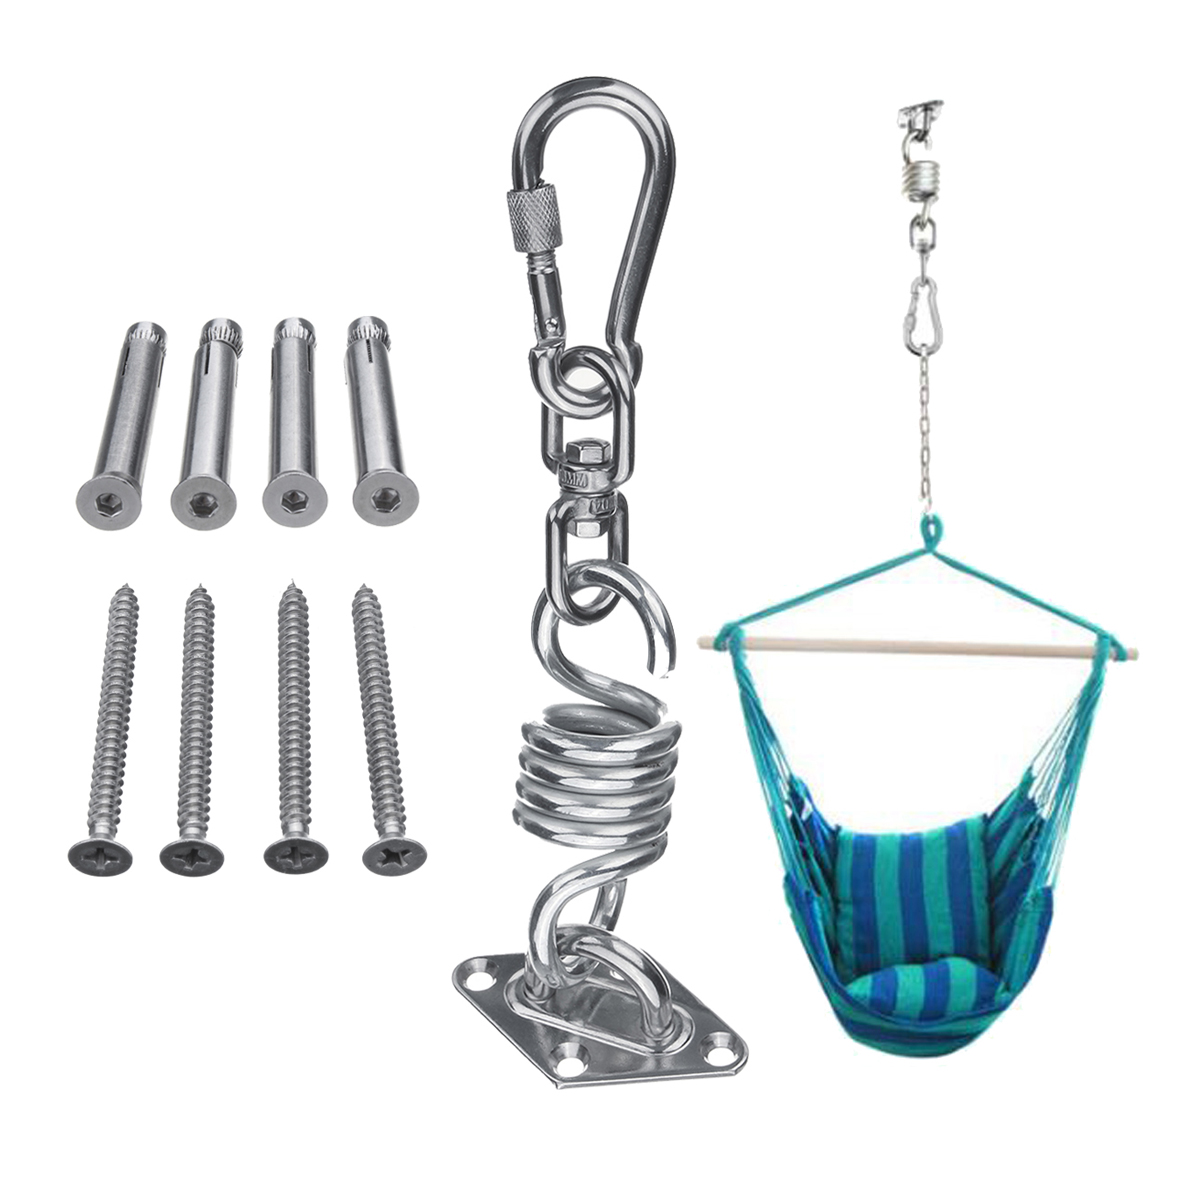 Stainless Steel Hammock Chair Hanging Kit Ceiling Mount